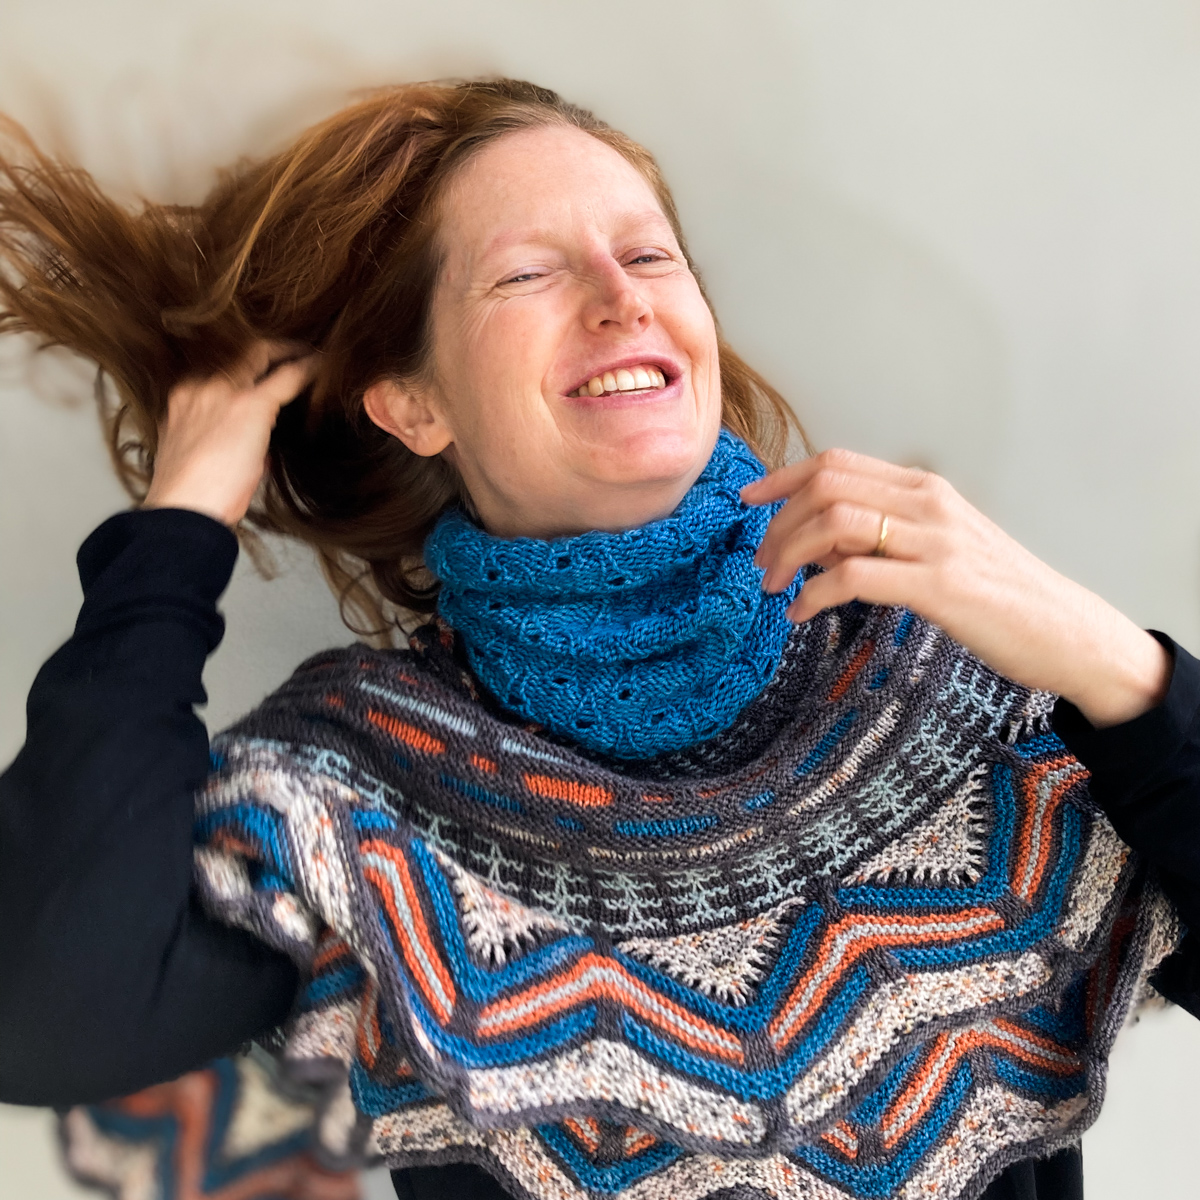 Bridget Henderson tosses her hair back wearing the Wild Weather Neckwarmer knit in Cowgirlblues Merino DK colour Guinea Fowl, and the Slipstravaganza Shawl knit in Cowgirlblues Merino Twist.